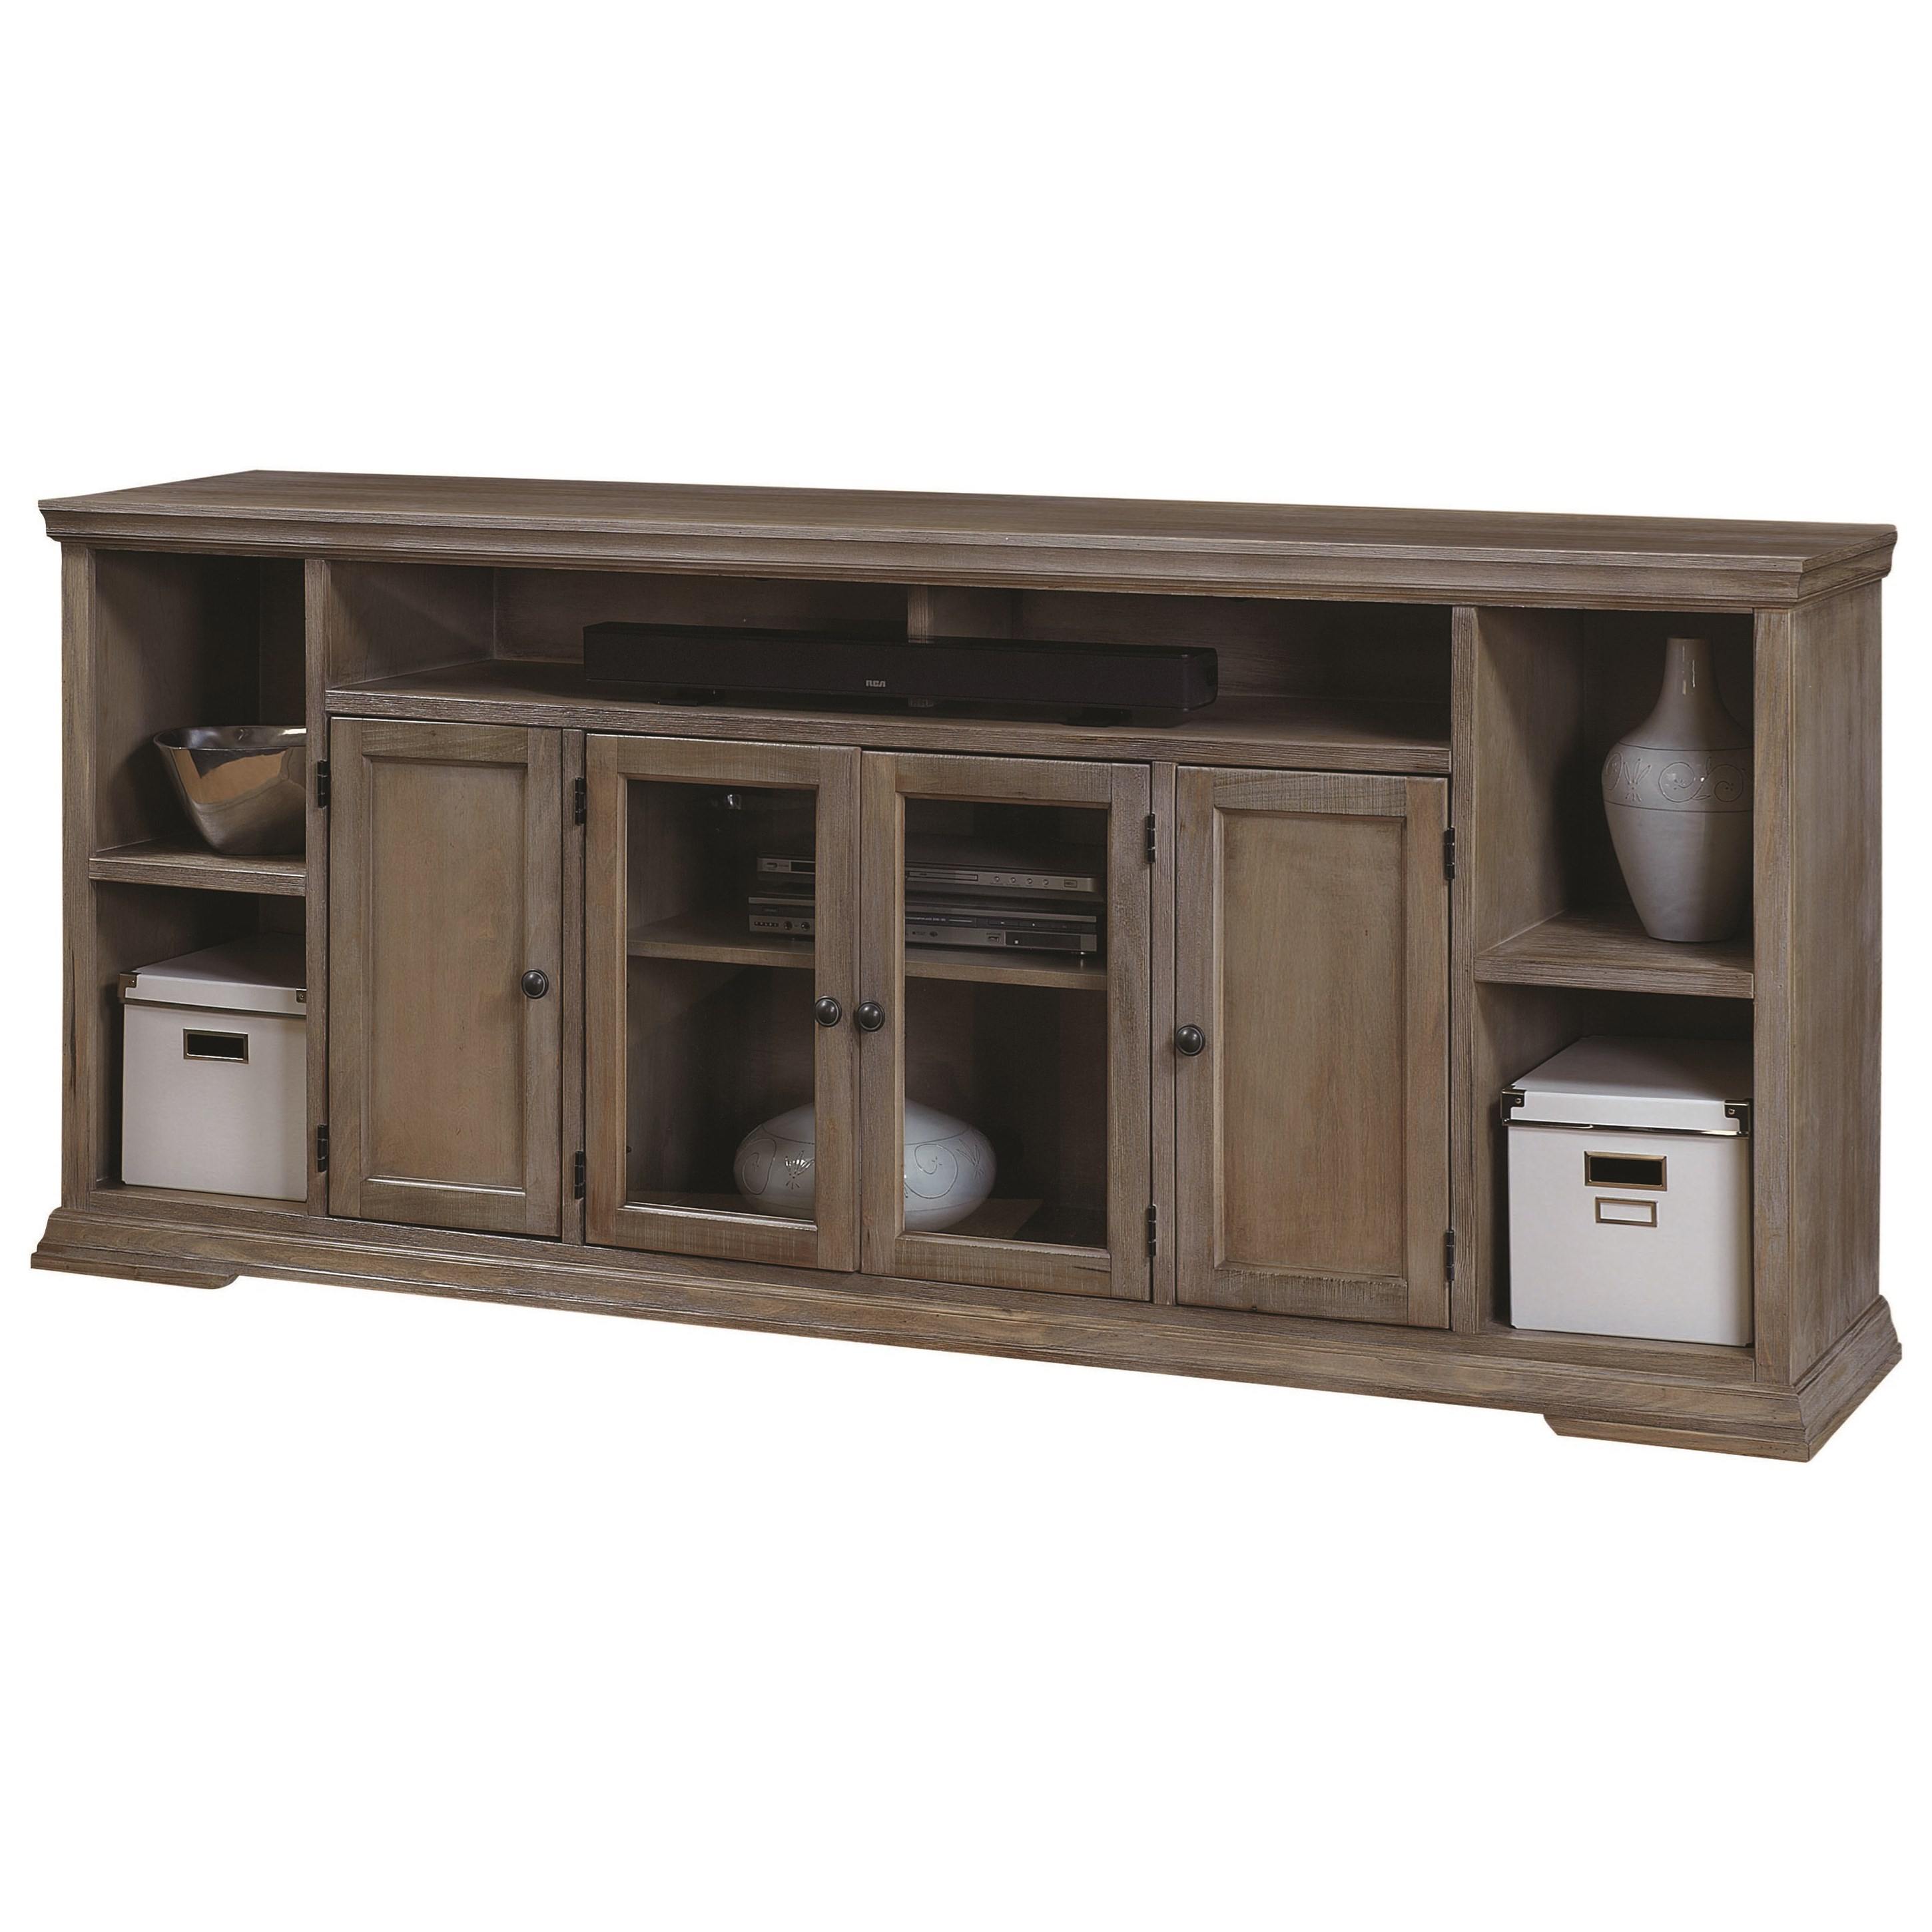 Aspenhome Canyon Creek Wck1036-Drf 84-Inch Tv Console With 4 Doors with Canyon 64 Inch Tv Stands (Image 1 of 30)